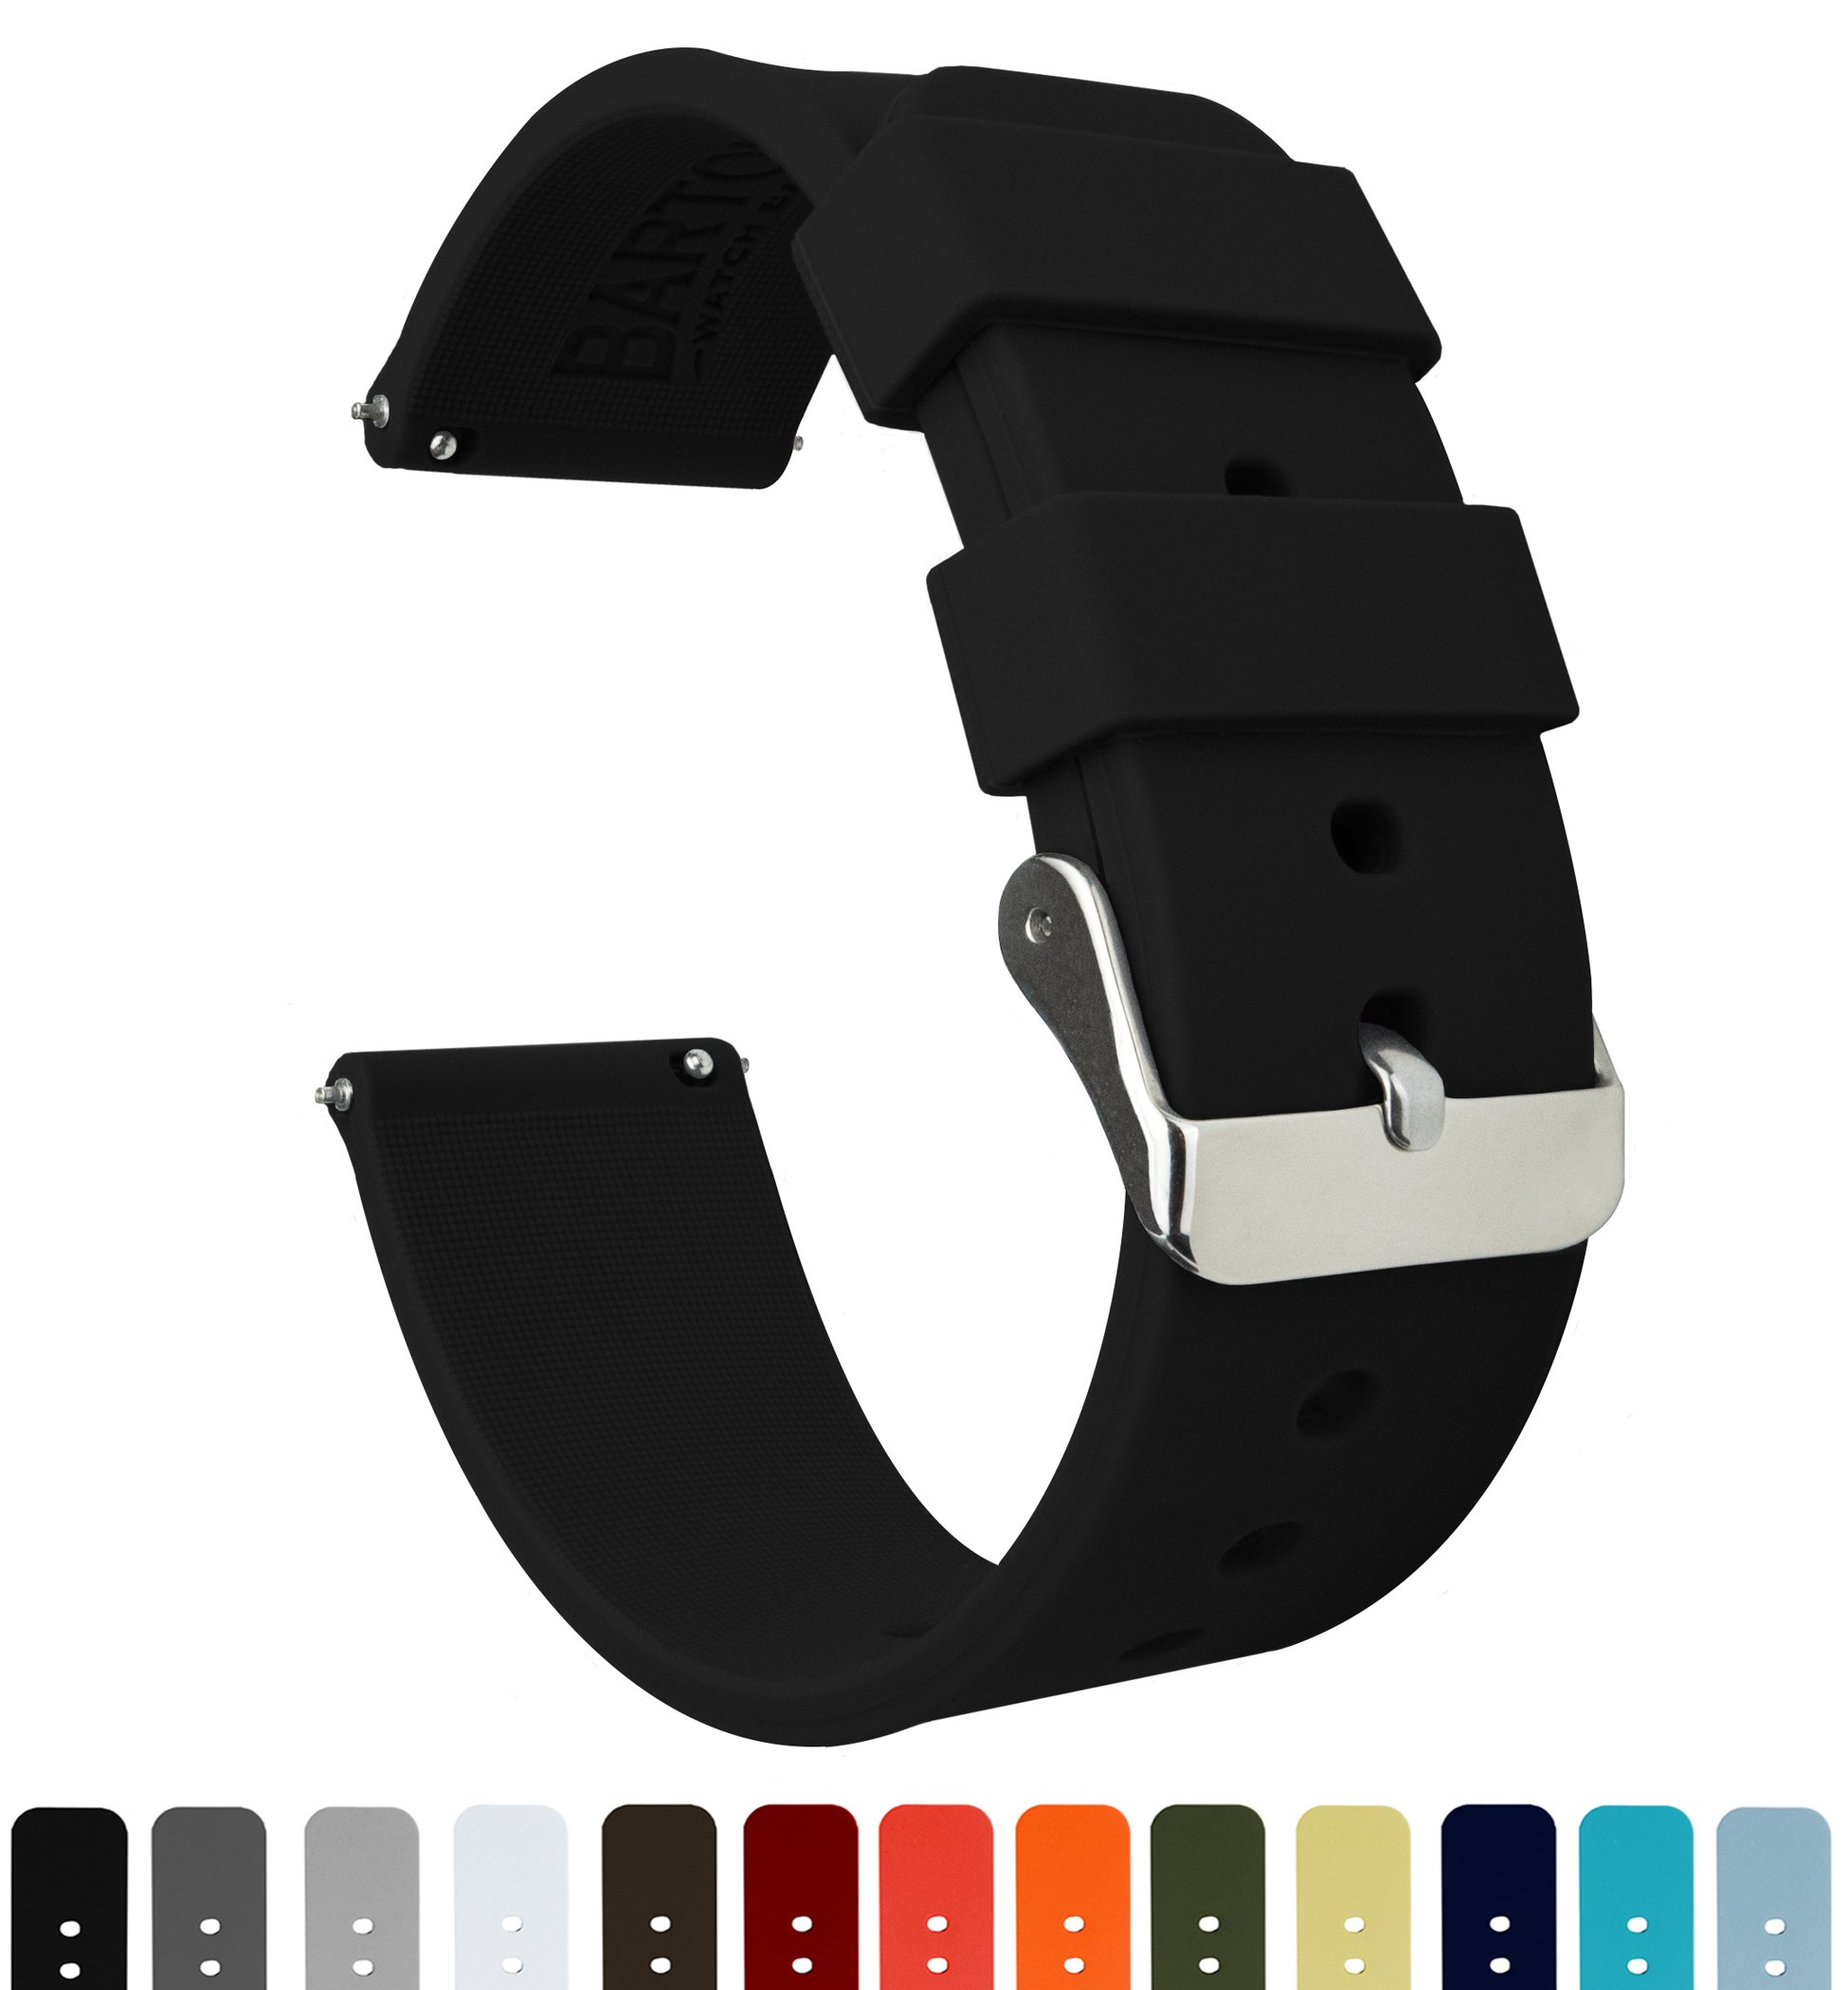 Barton Silicone Watch Bands – Quick Release Straps – Choose Color & Width – 16mm, 18mm, 20mm, 22mm or 24mm – Soft Rubber